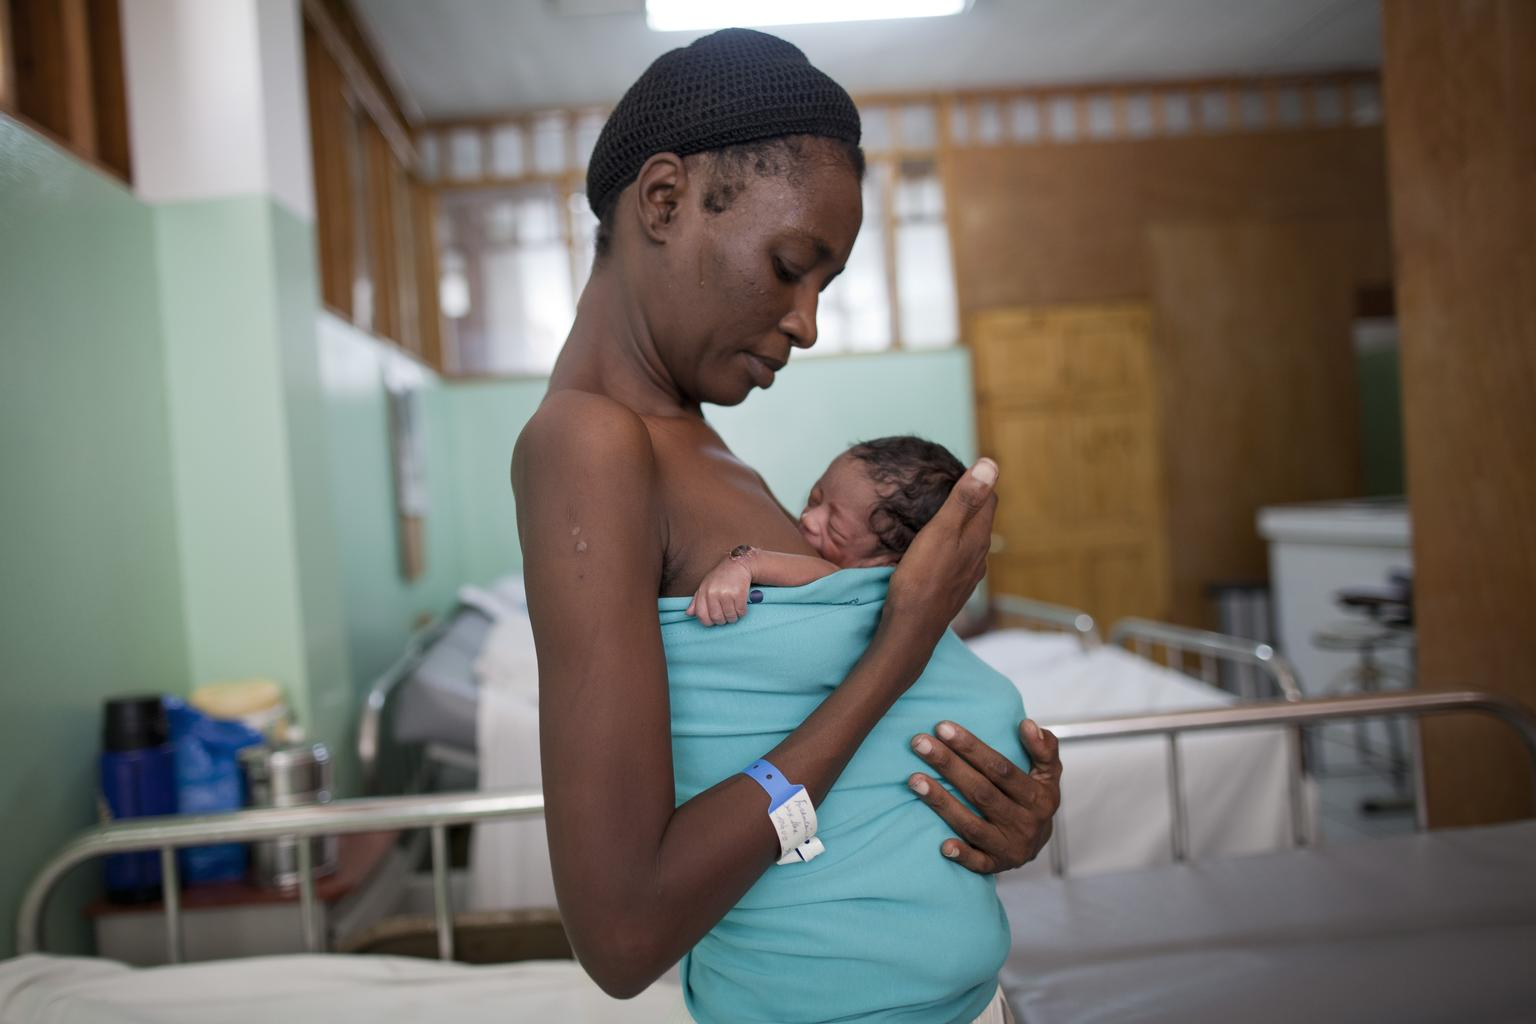 33 year old Marie Michelle Francois holds her premature baby using the Kangaroo technique at the UNICEF supported Maternity ward of the State University Hospital in Port au Prince, Haiti. © UNICEF/HTIA2012-00325/Dormino.